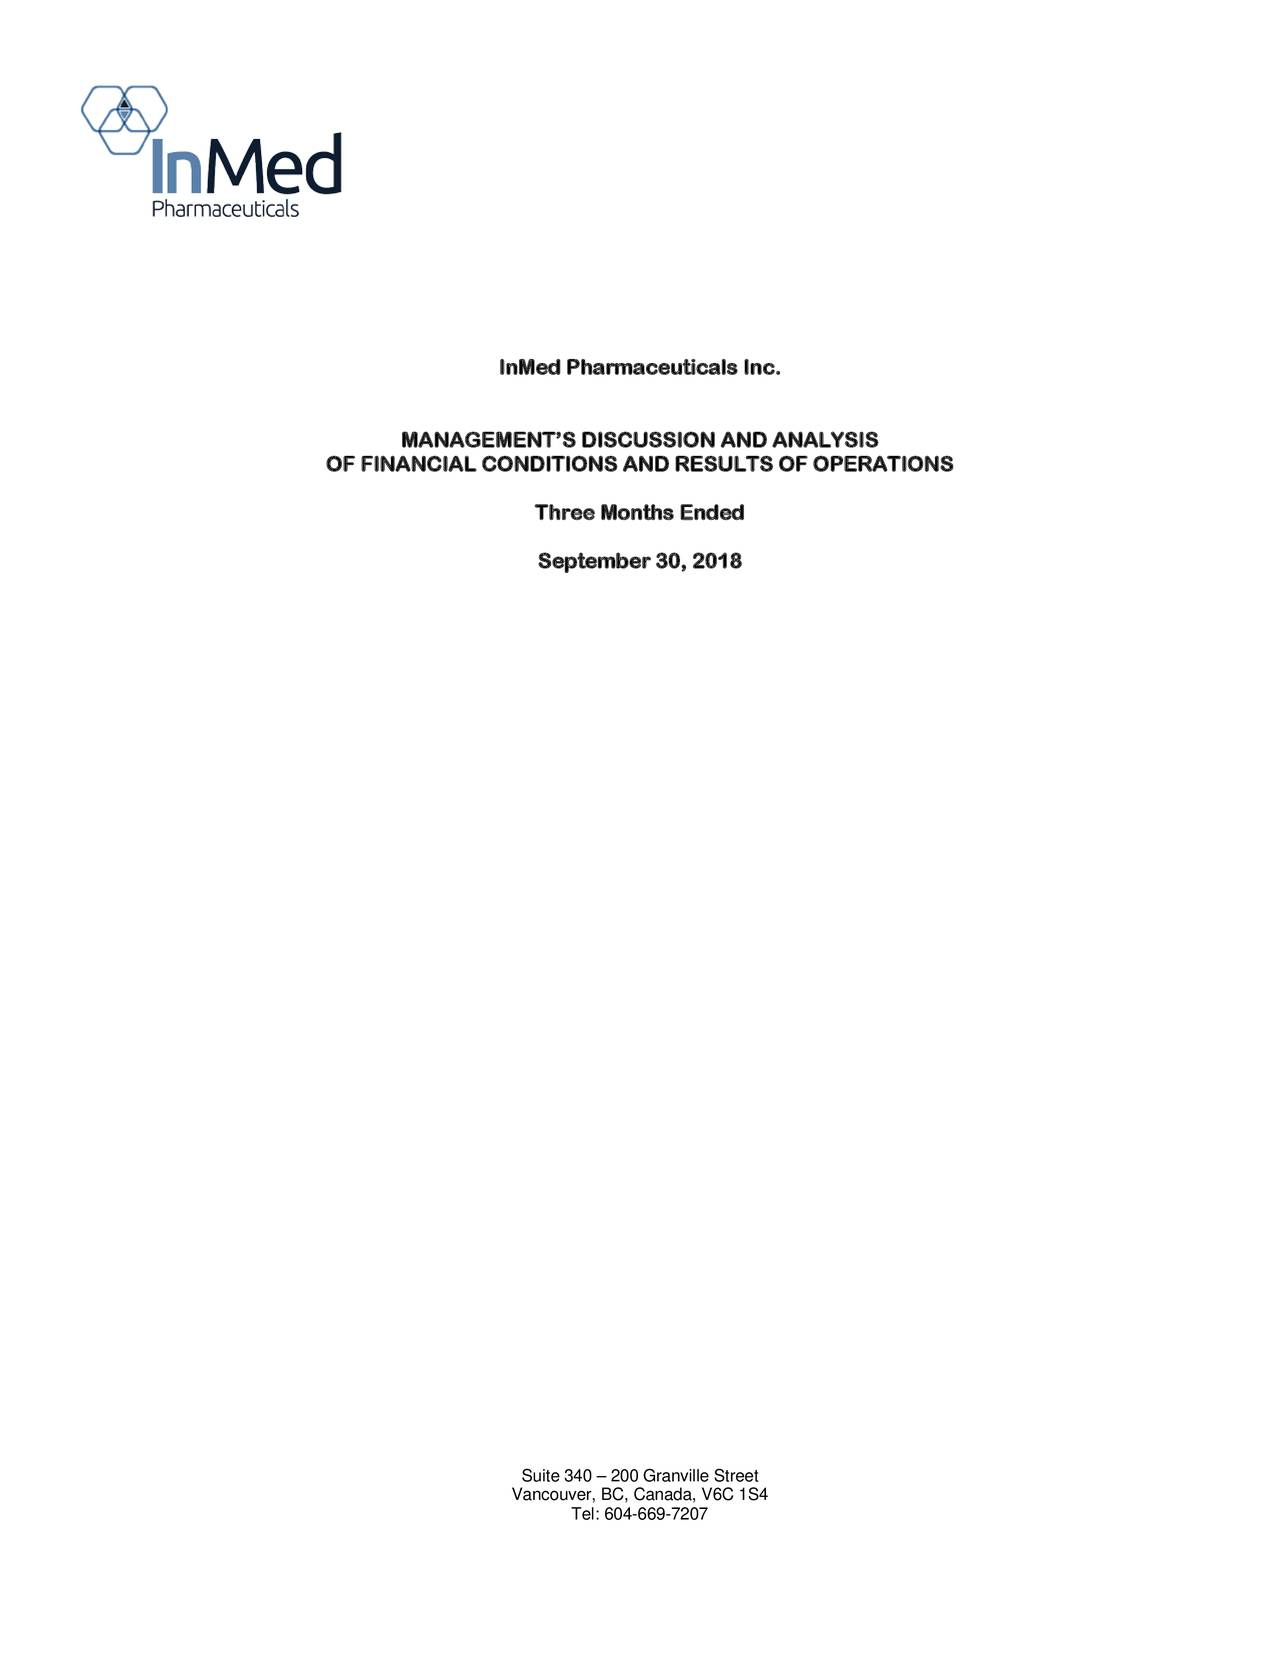 MANAGEMENT'S DISCUSSION AND ANALYSIS OF FINANCIAL CONDITIONS AND RESULTS OF OPERATIONS Three Months Ended September 30, 2018 Suite 340 – 200 Granville Street Vancouver, BC, Canada, V6C 1S4 Tel: 604-669-7207